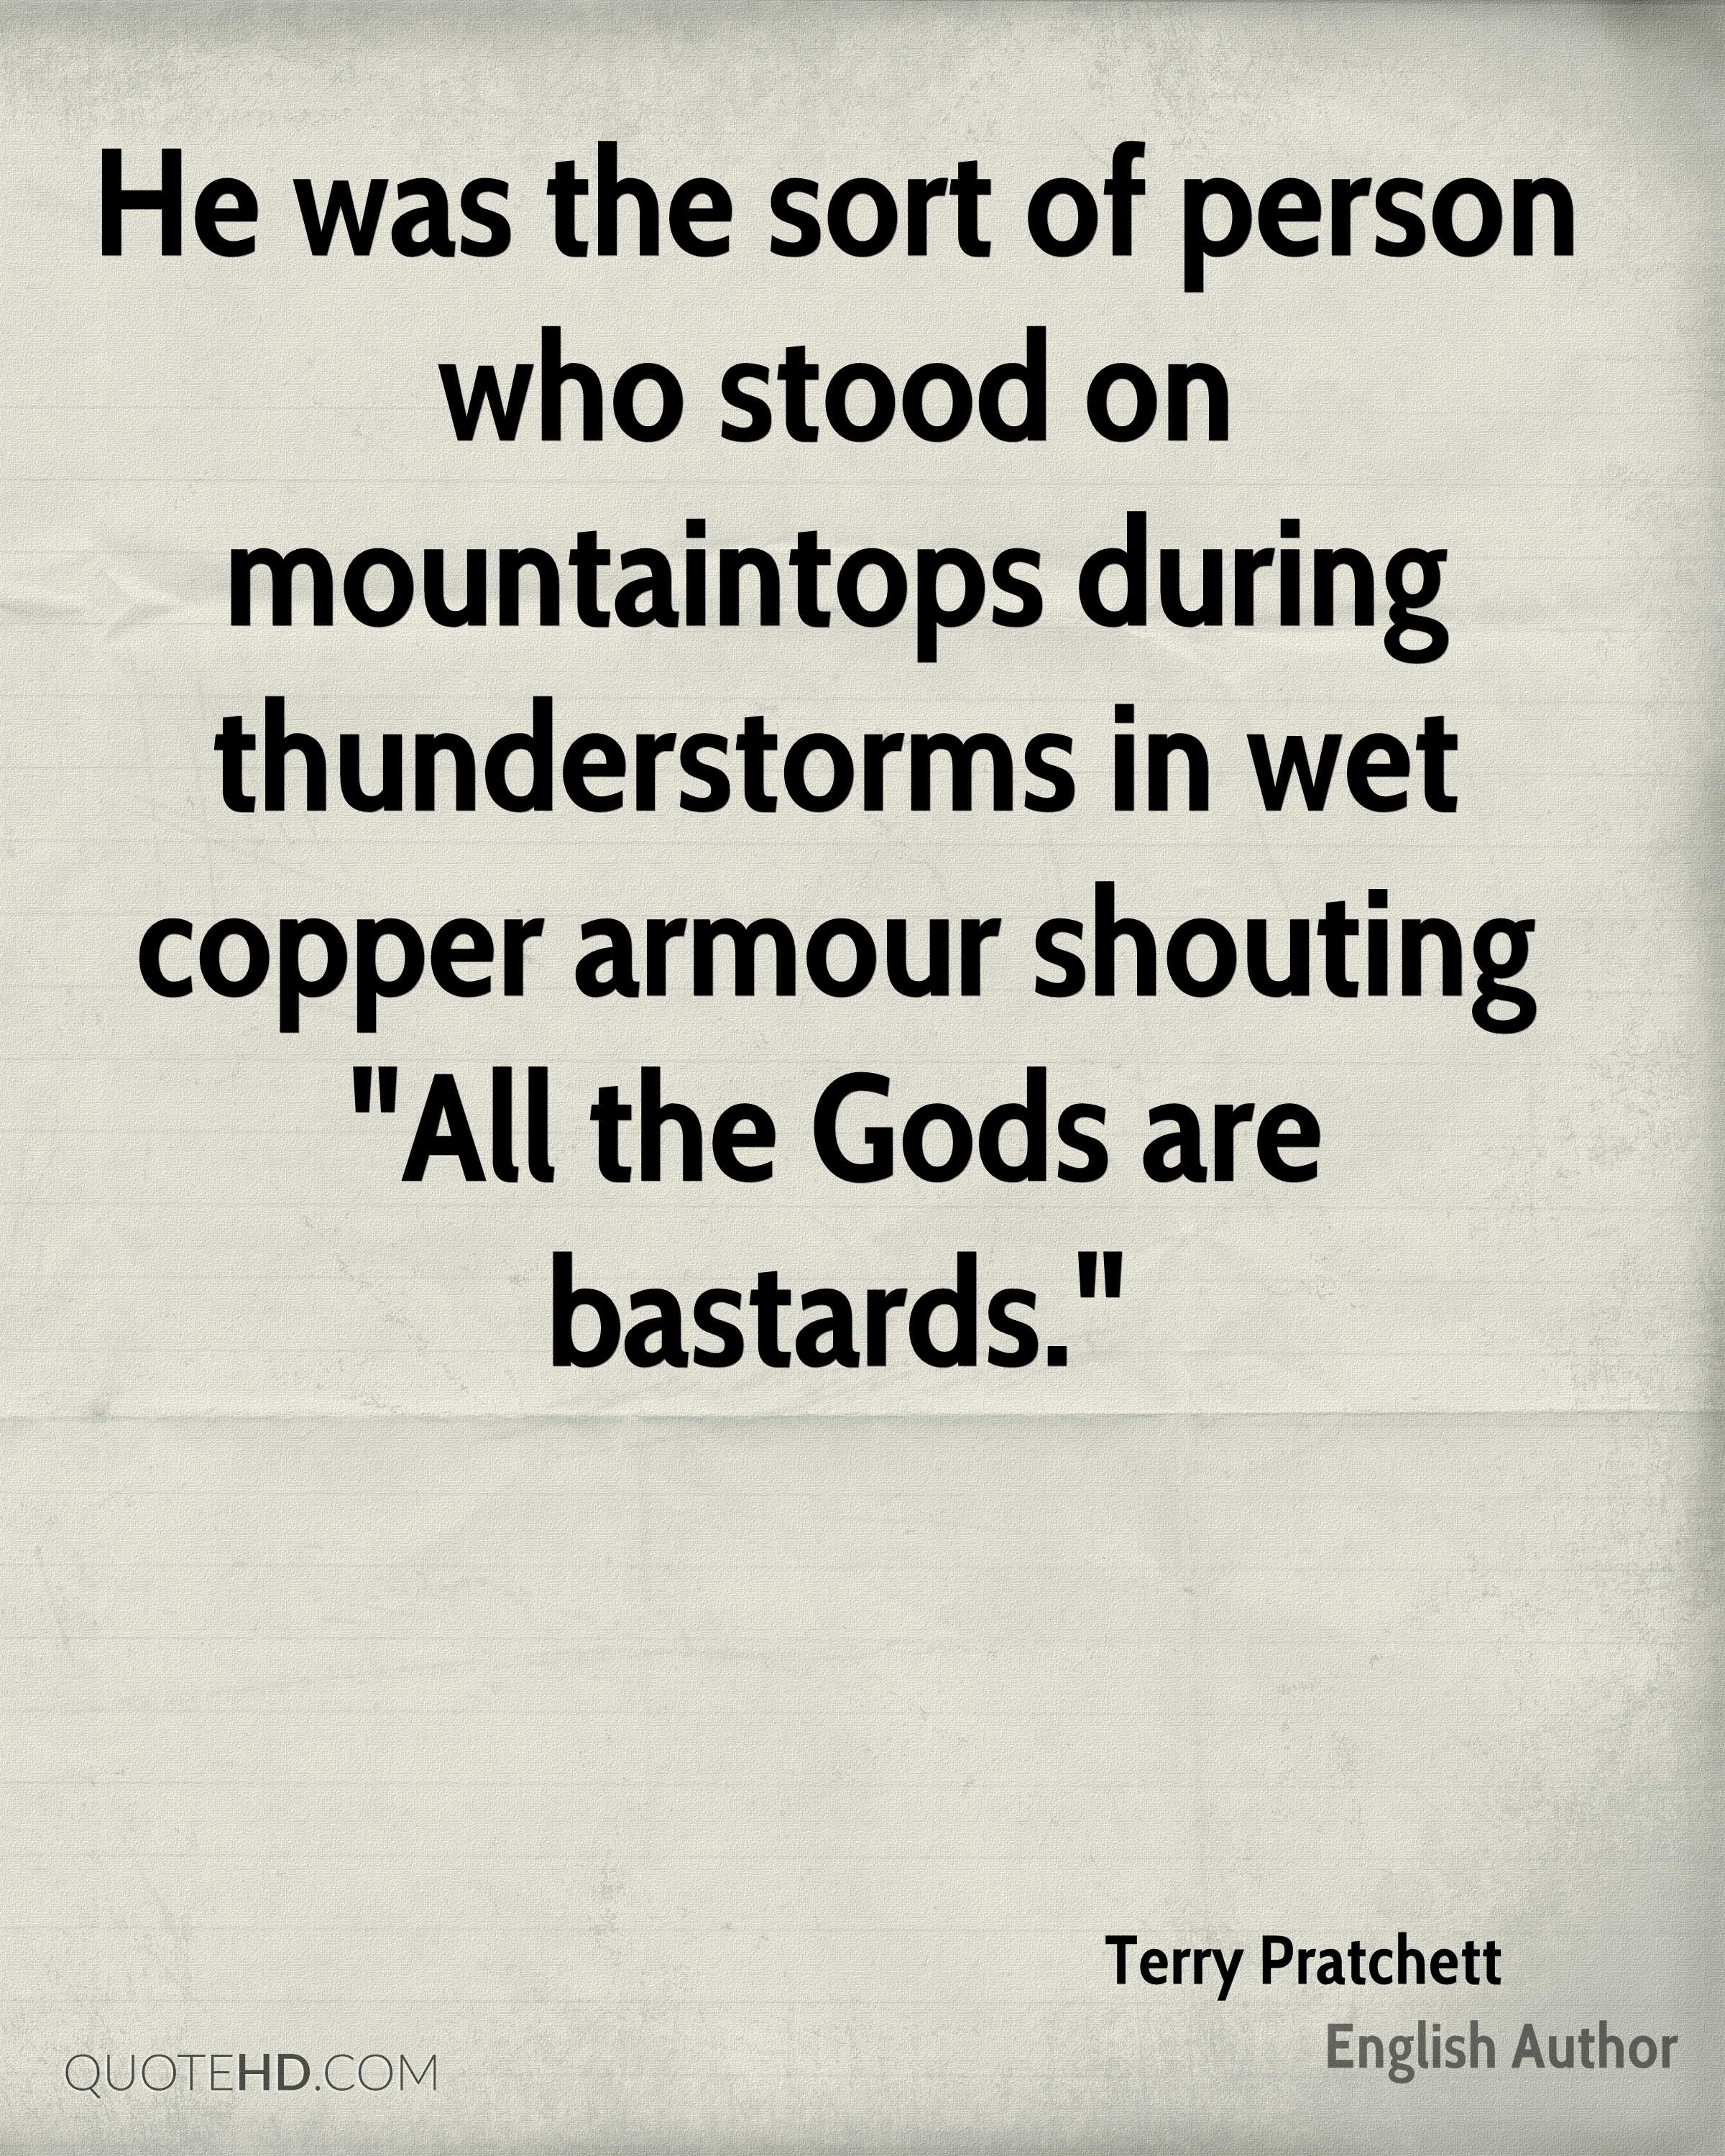 """He was the sort of person who stood on mountaintops during thunderstorms in wet copper armour shouting """"All the Gods are bastards."""""""